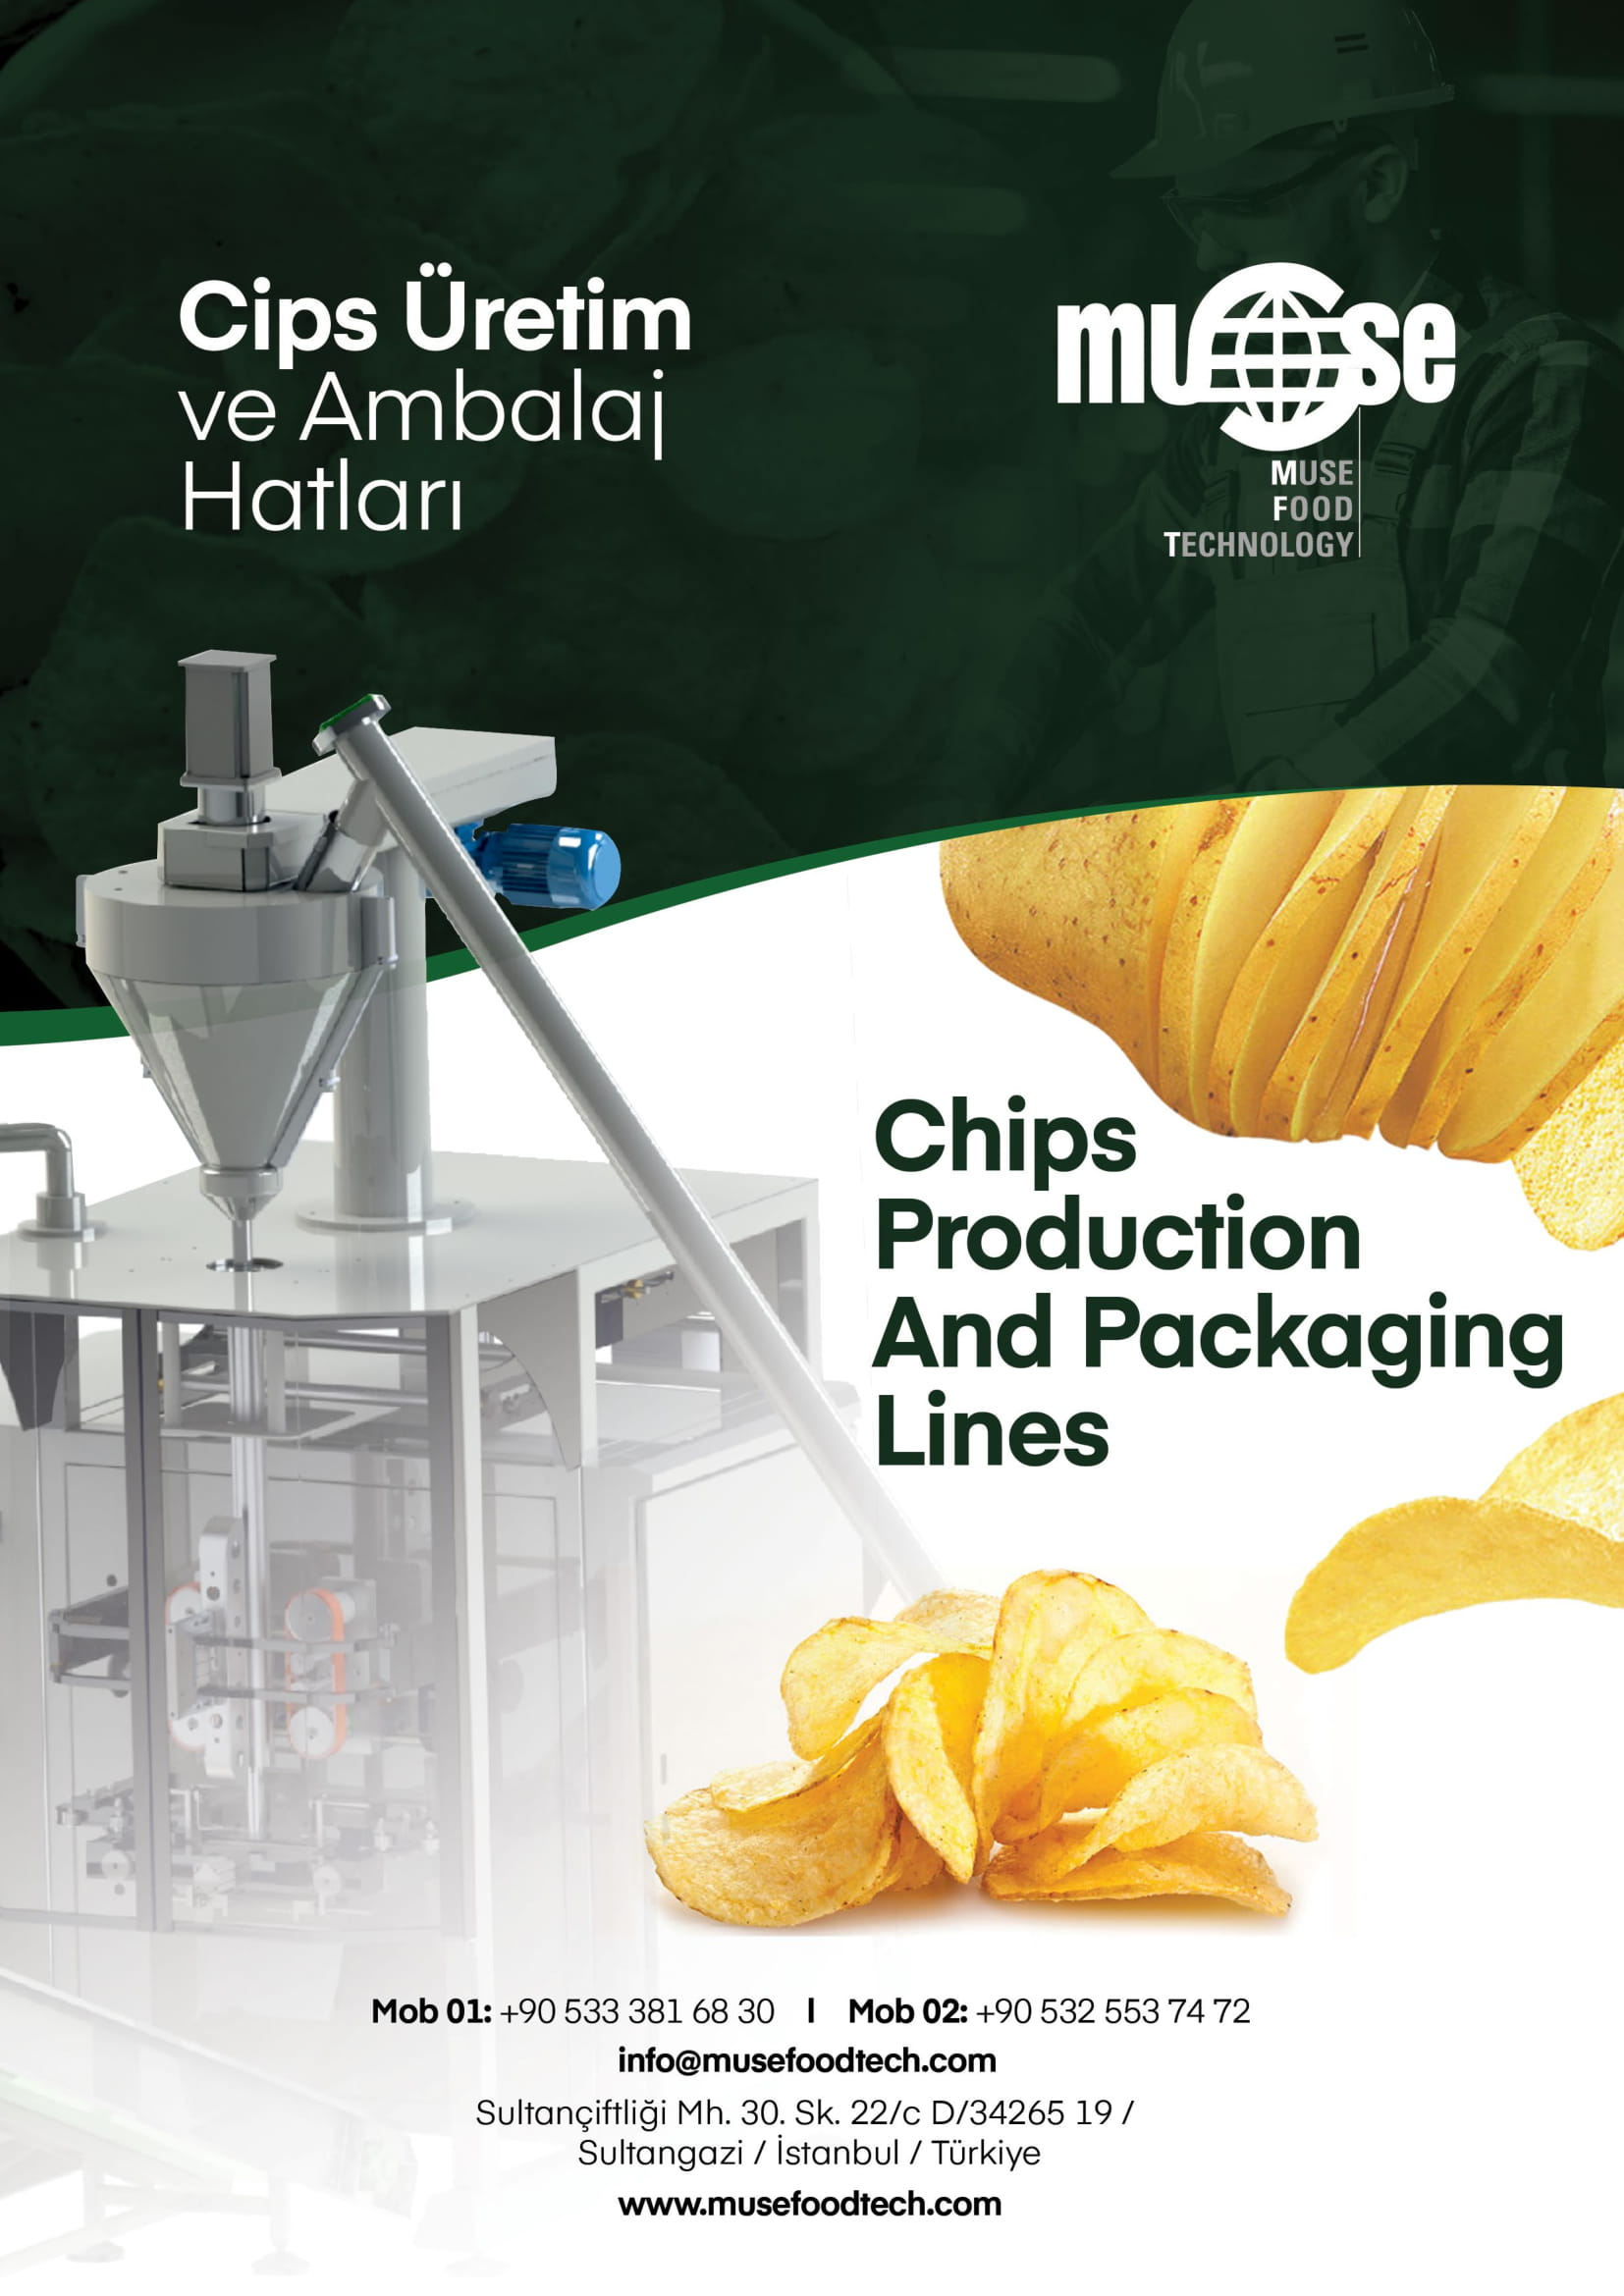 Musepak-Chips-Catalog-11